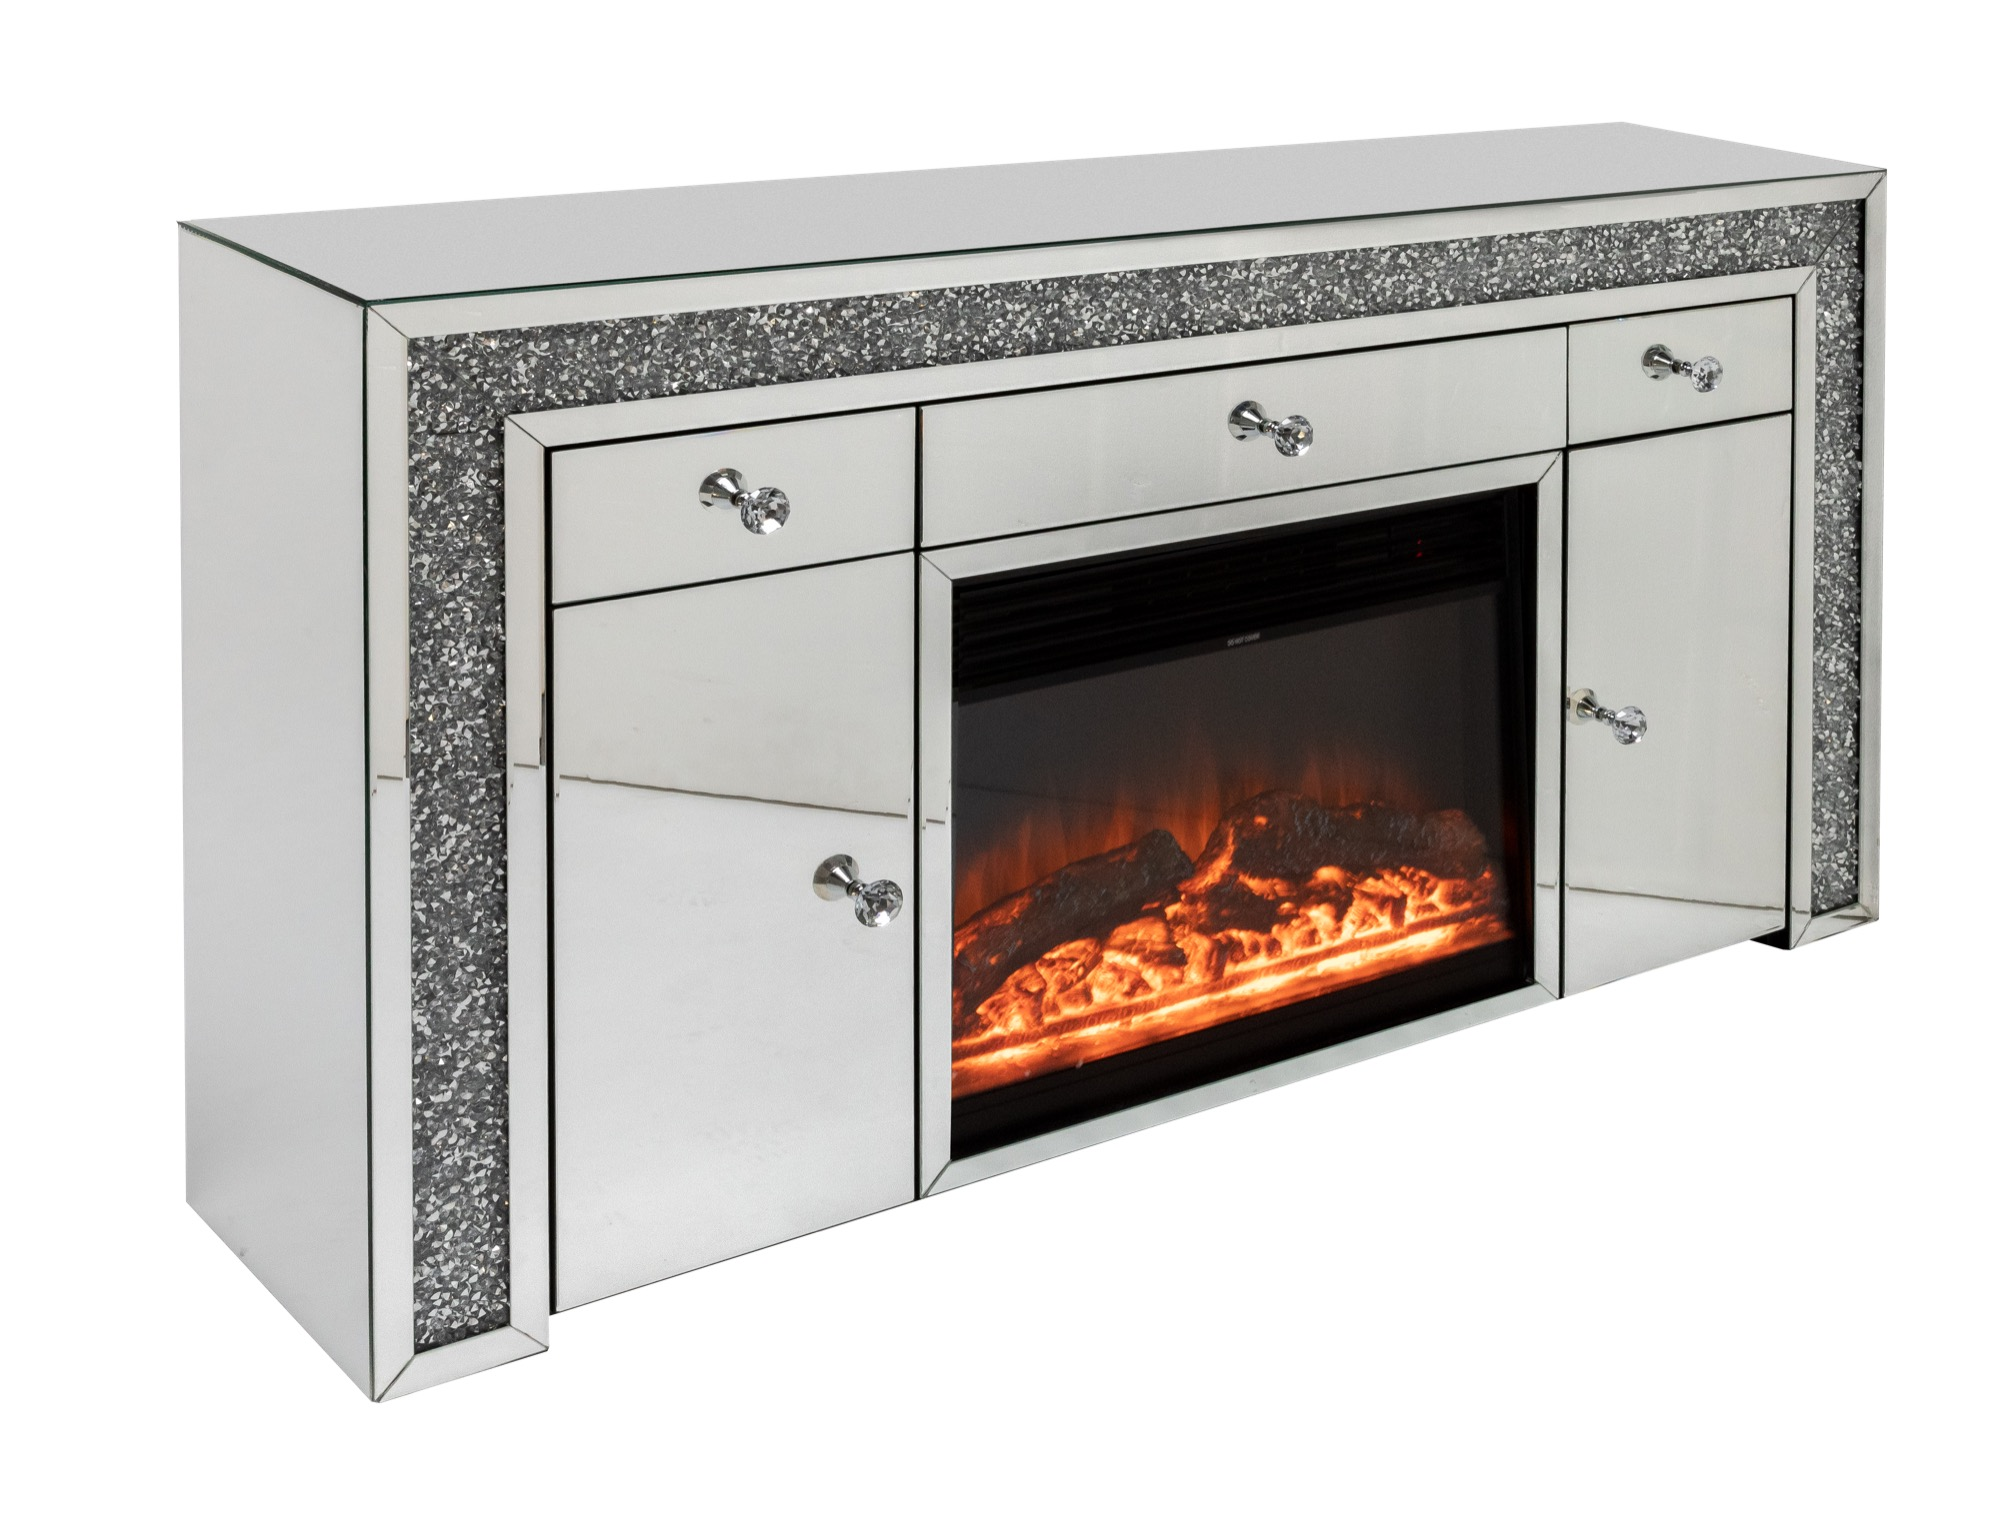 Serapane Sideboard with Fireplace